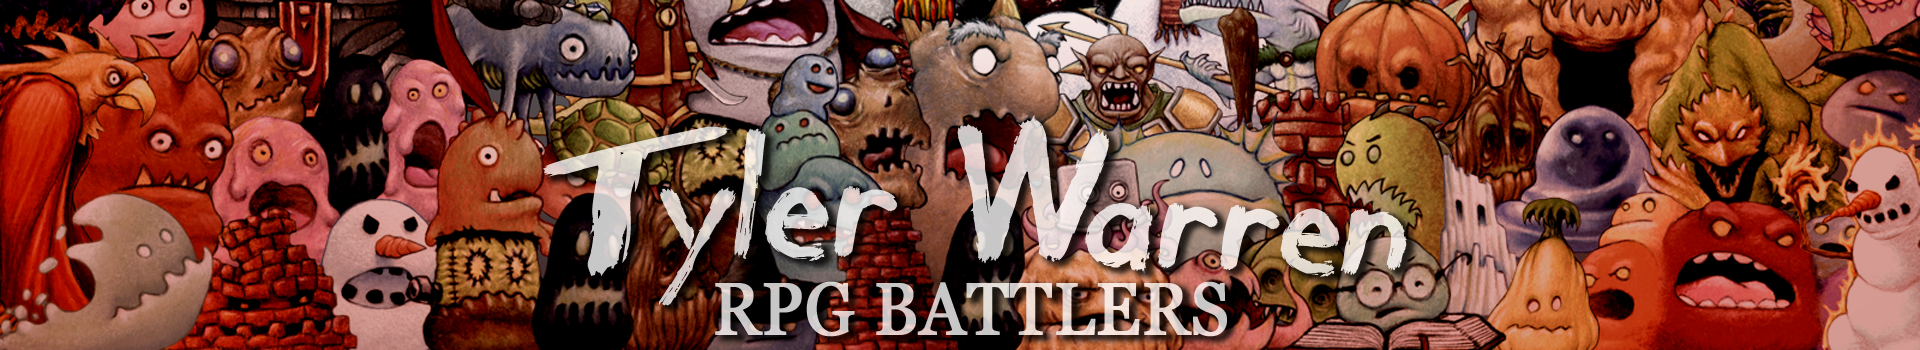 FREE Tyler Warren RPG Battlers Favorites (30)